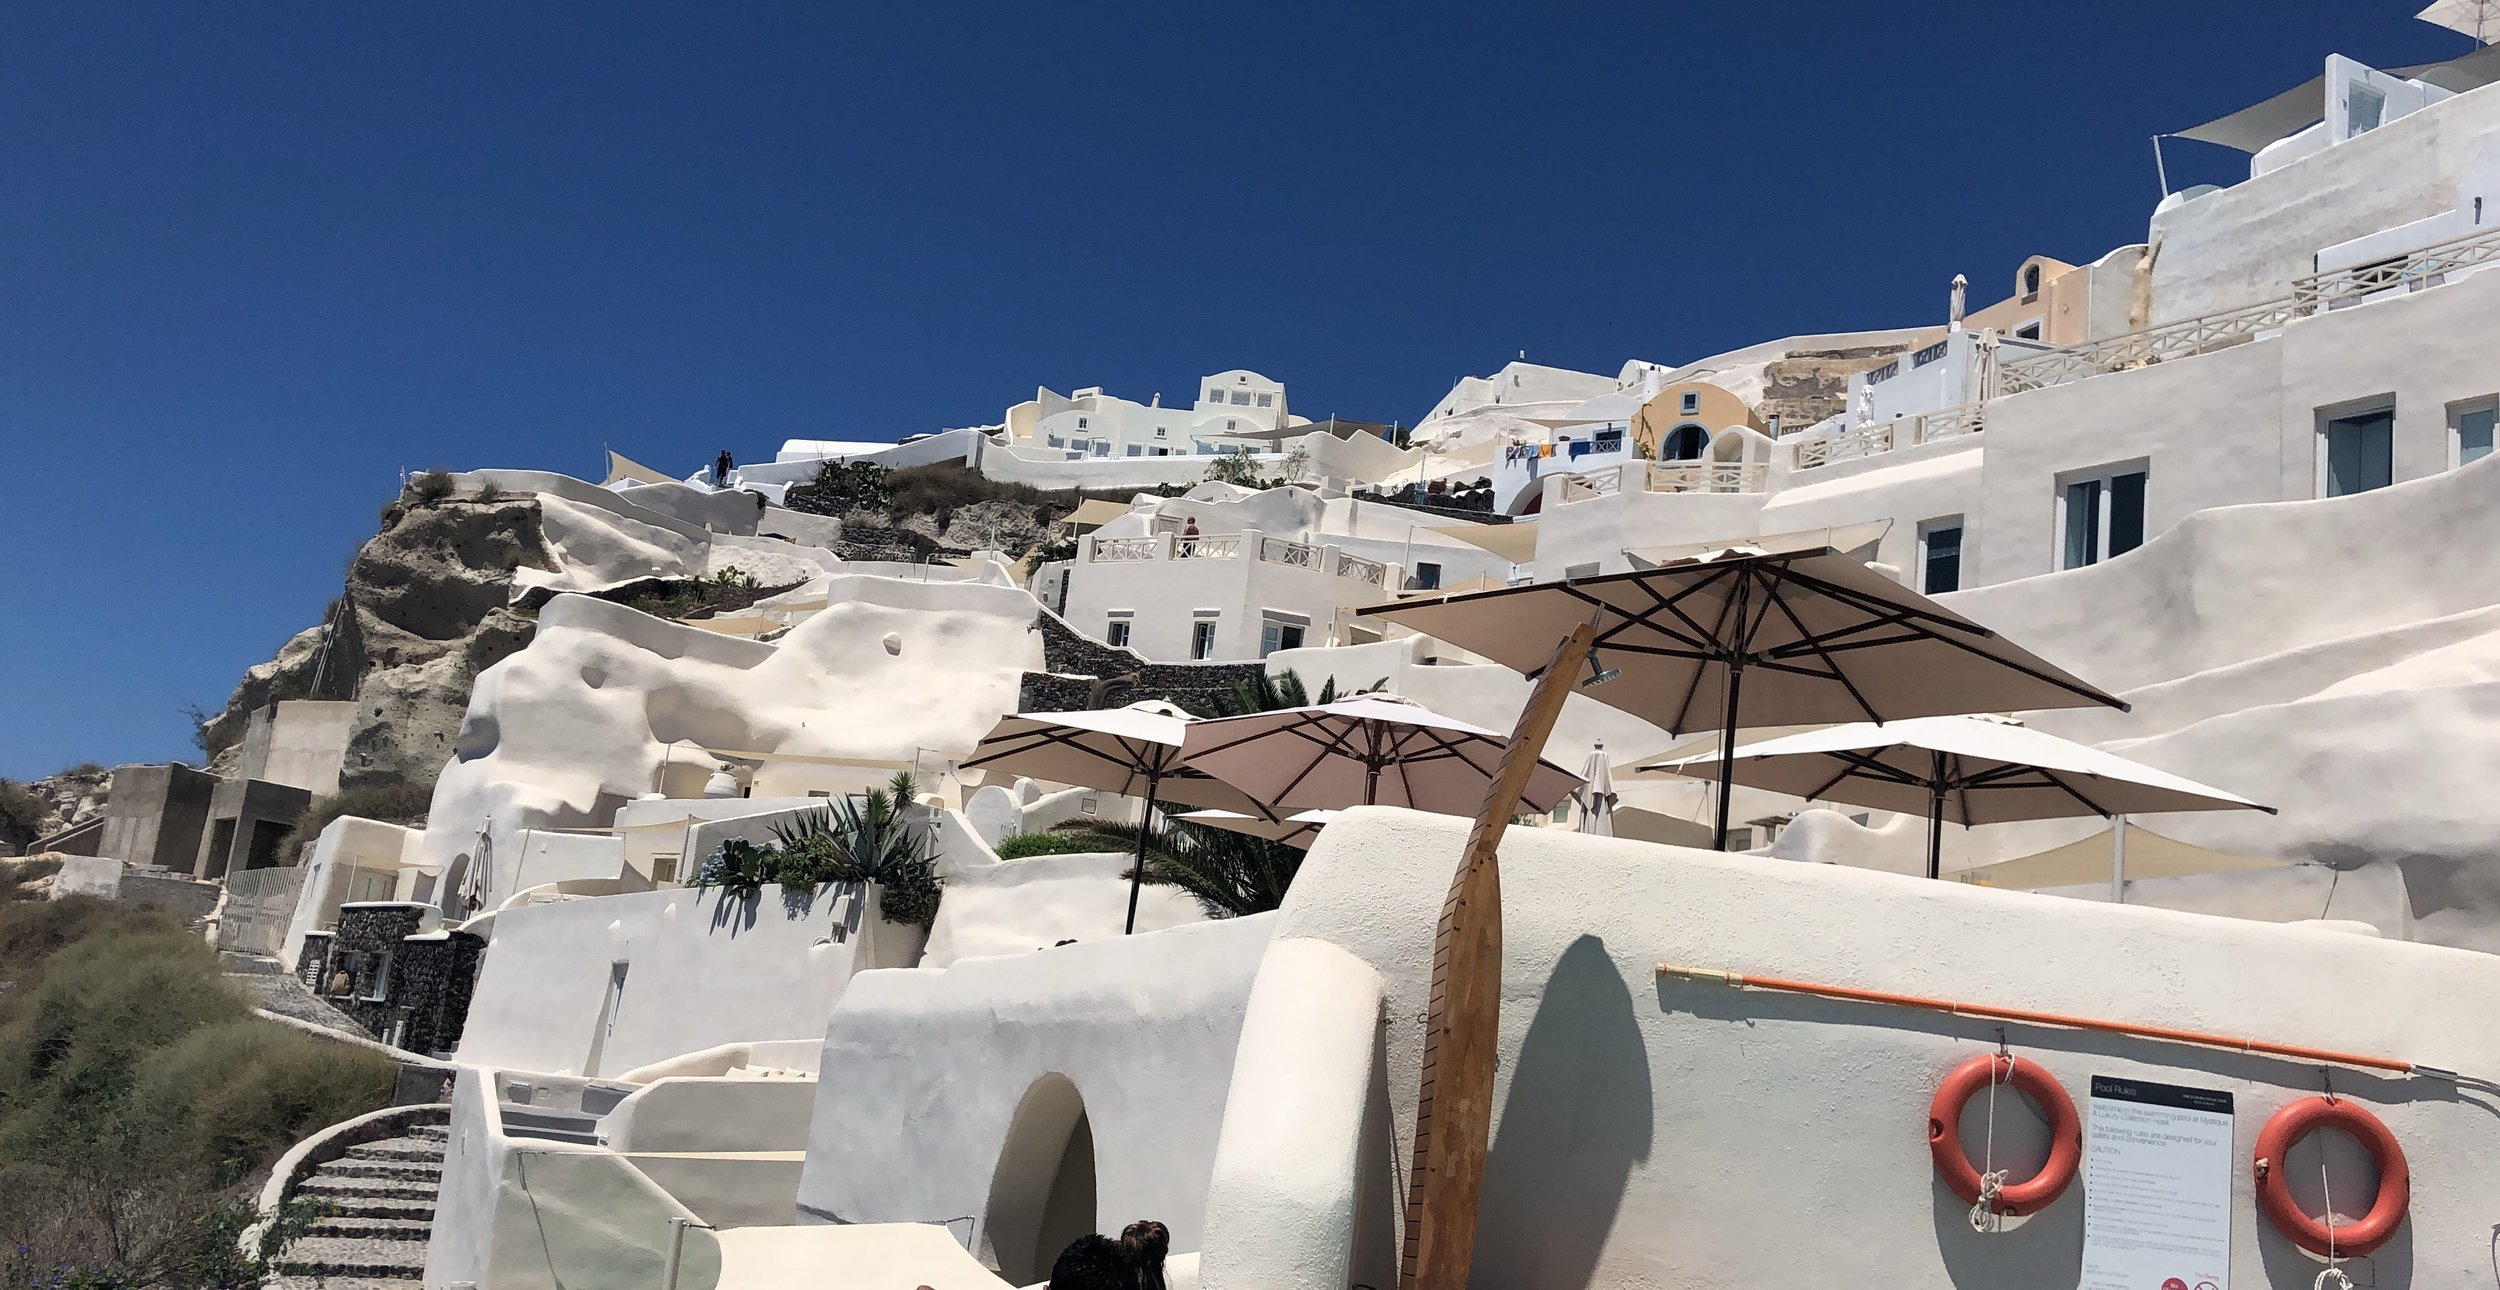 Our hotel, Mystique, was made out of caves that sat alongside the picturesque mountains of Santorini.